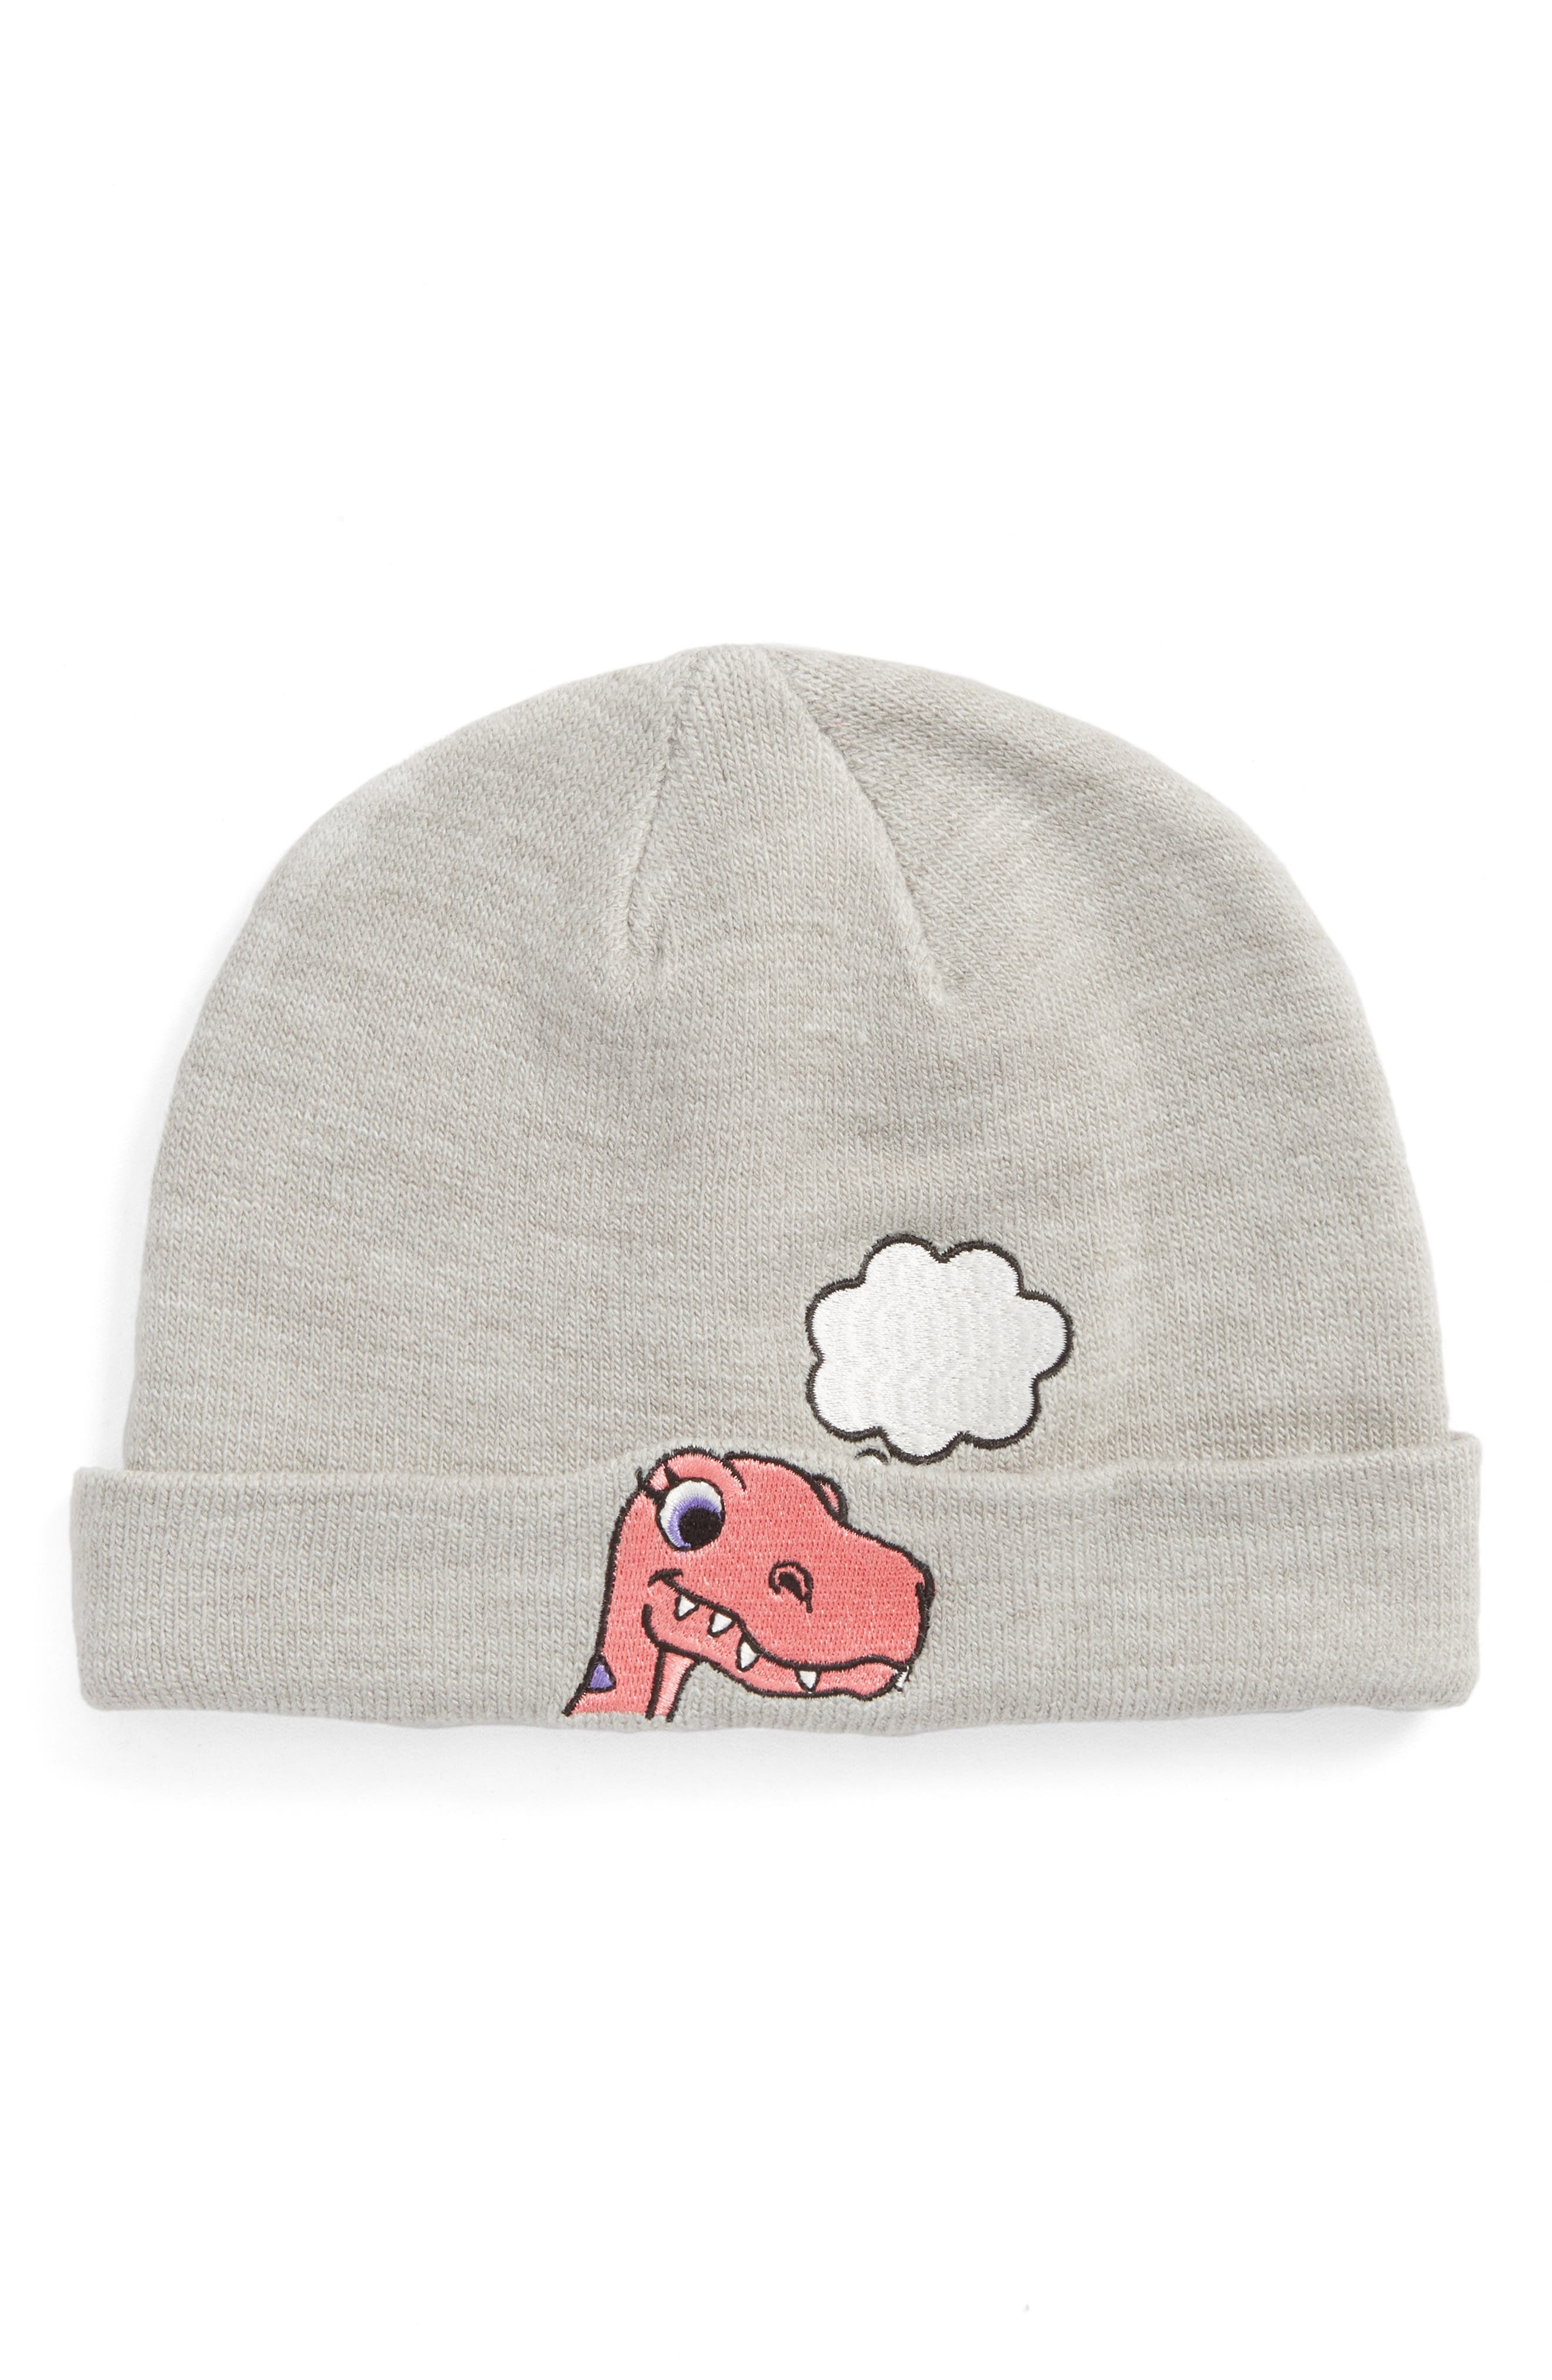 Capelli of New York Brainstorming Dino Beanie,                         Main,                         color, Grey Combo